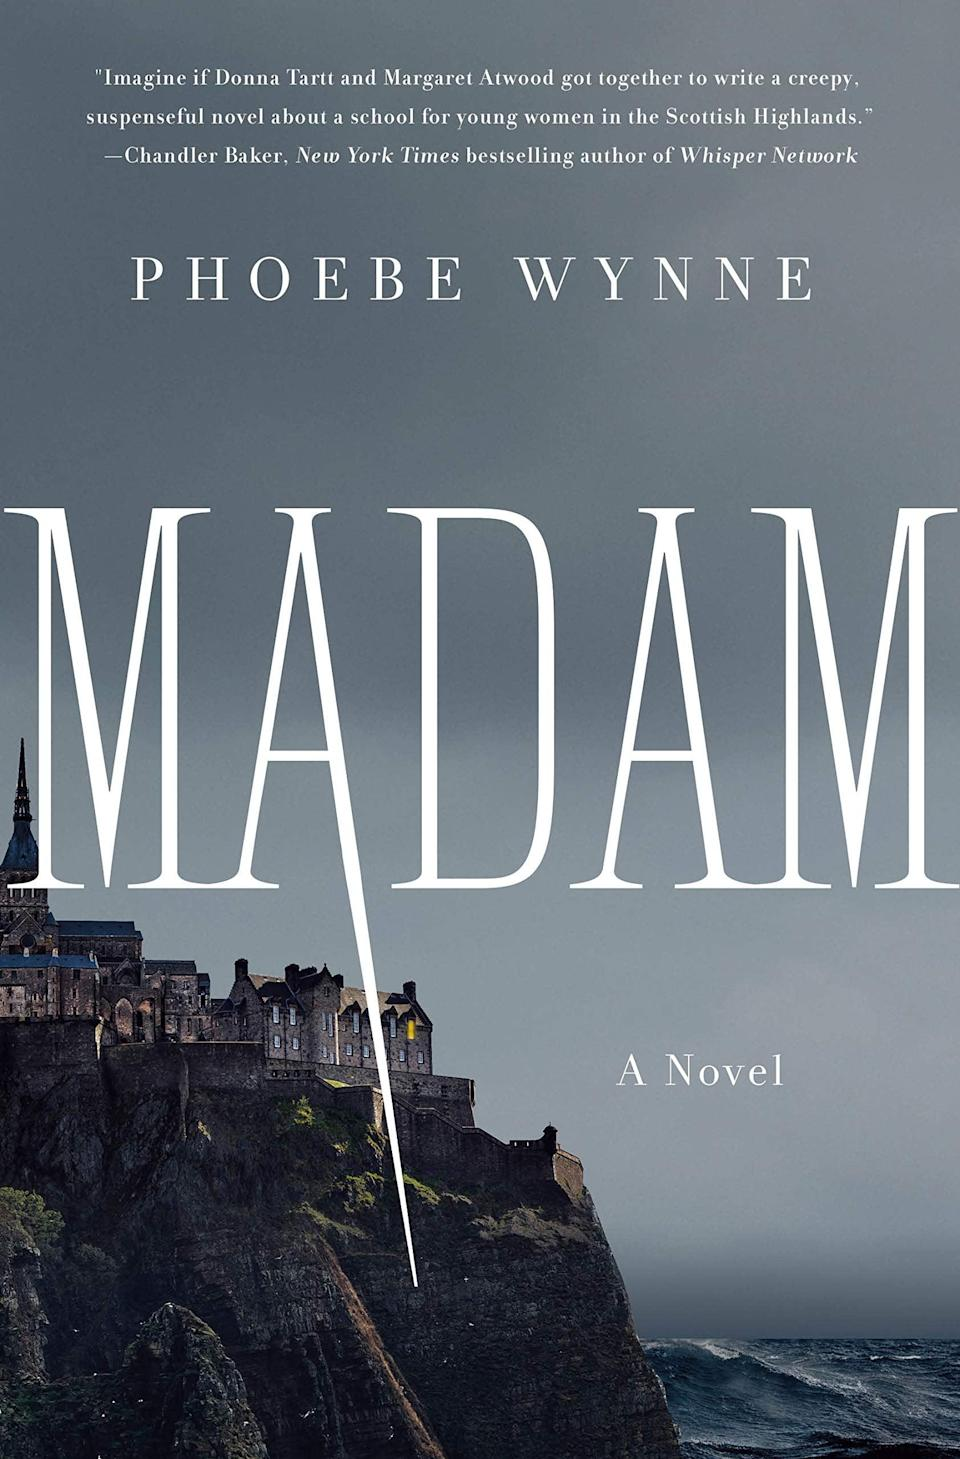 <p><span><strong>Madam</strong></span> by Phoebe Wynne is a modern Gothic tale set at an elite boarding school for girls that has been open for 150 years. As the first new hire in more than a decade, Rose is shocked to discover just how antiquated the school's practices are, but her shock quickly turns to dread when she begins digging into the past of her predecessor. </p> <p><em>Out May 18</em></p>